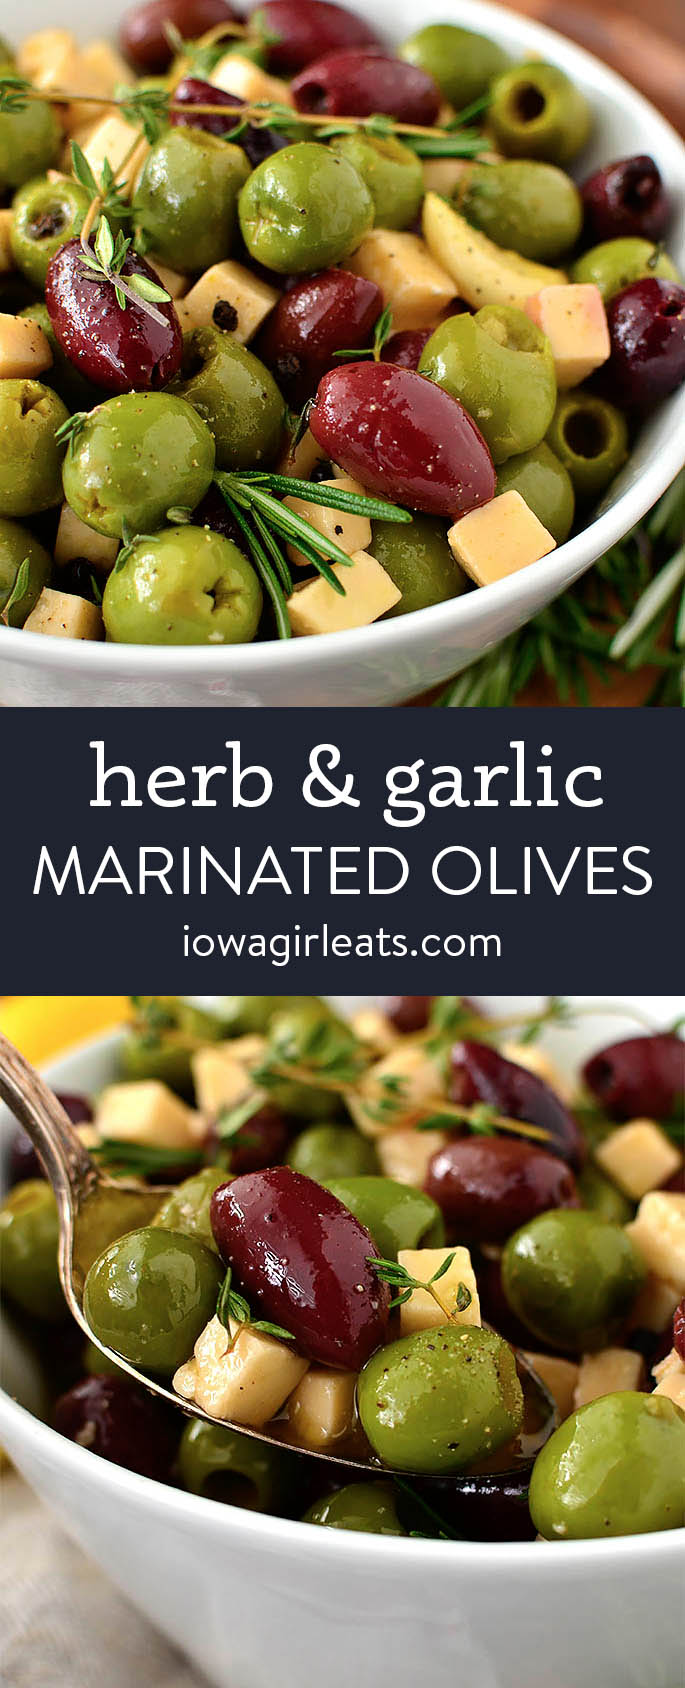 Photo collage of herb and garlic marinated olives